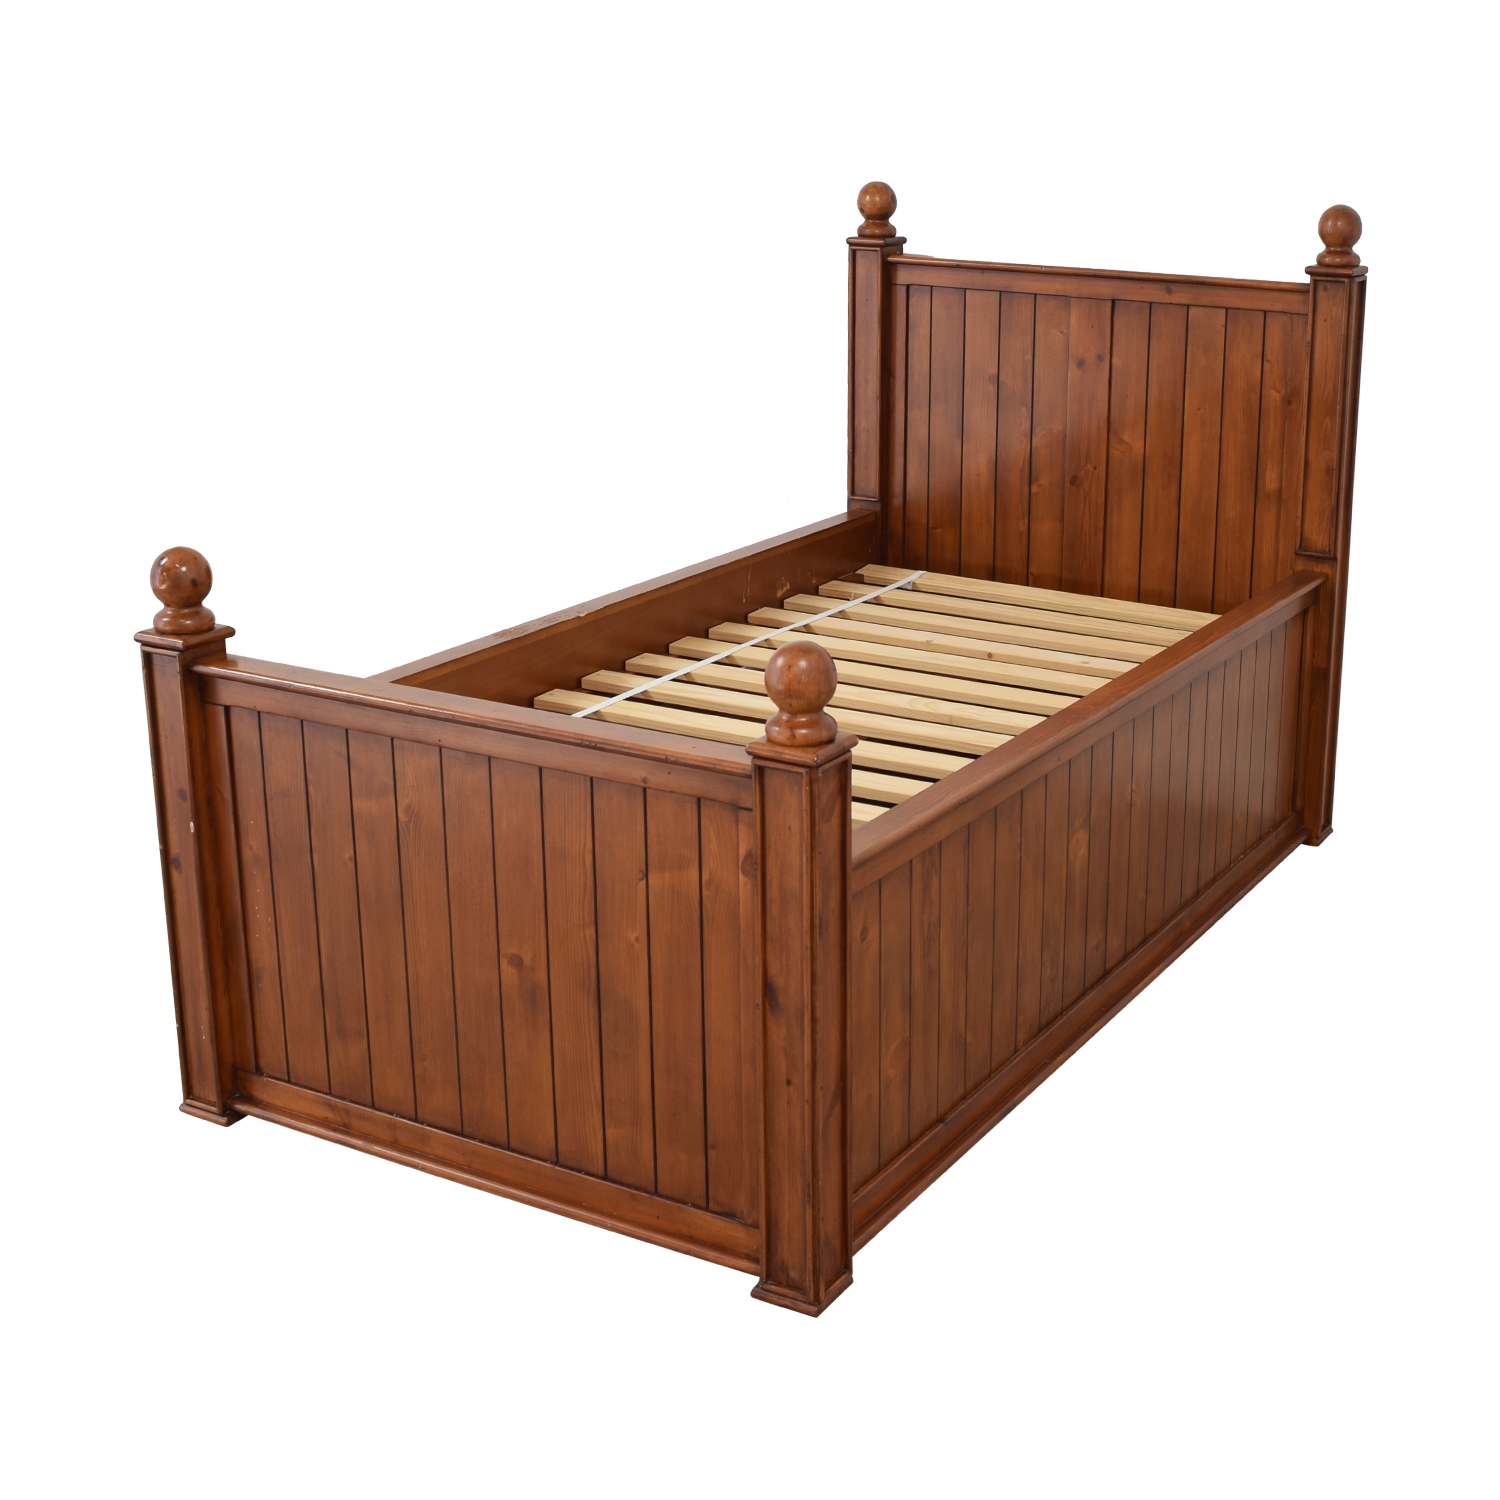 Pottery Barn Kids Pottery Barn Kids Bed with Storage used